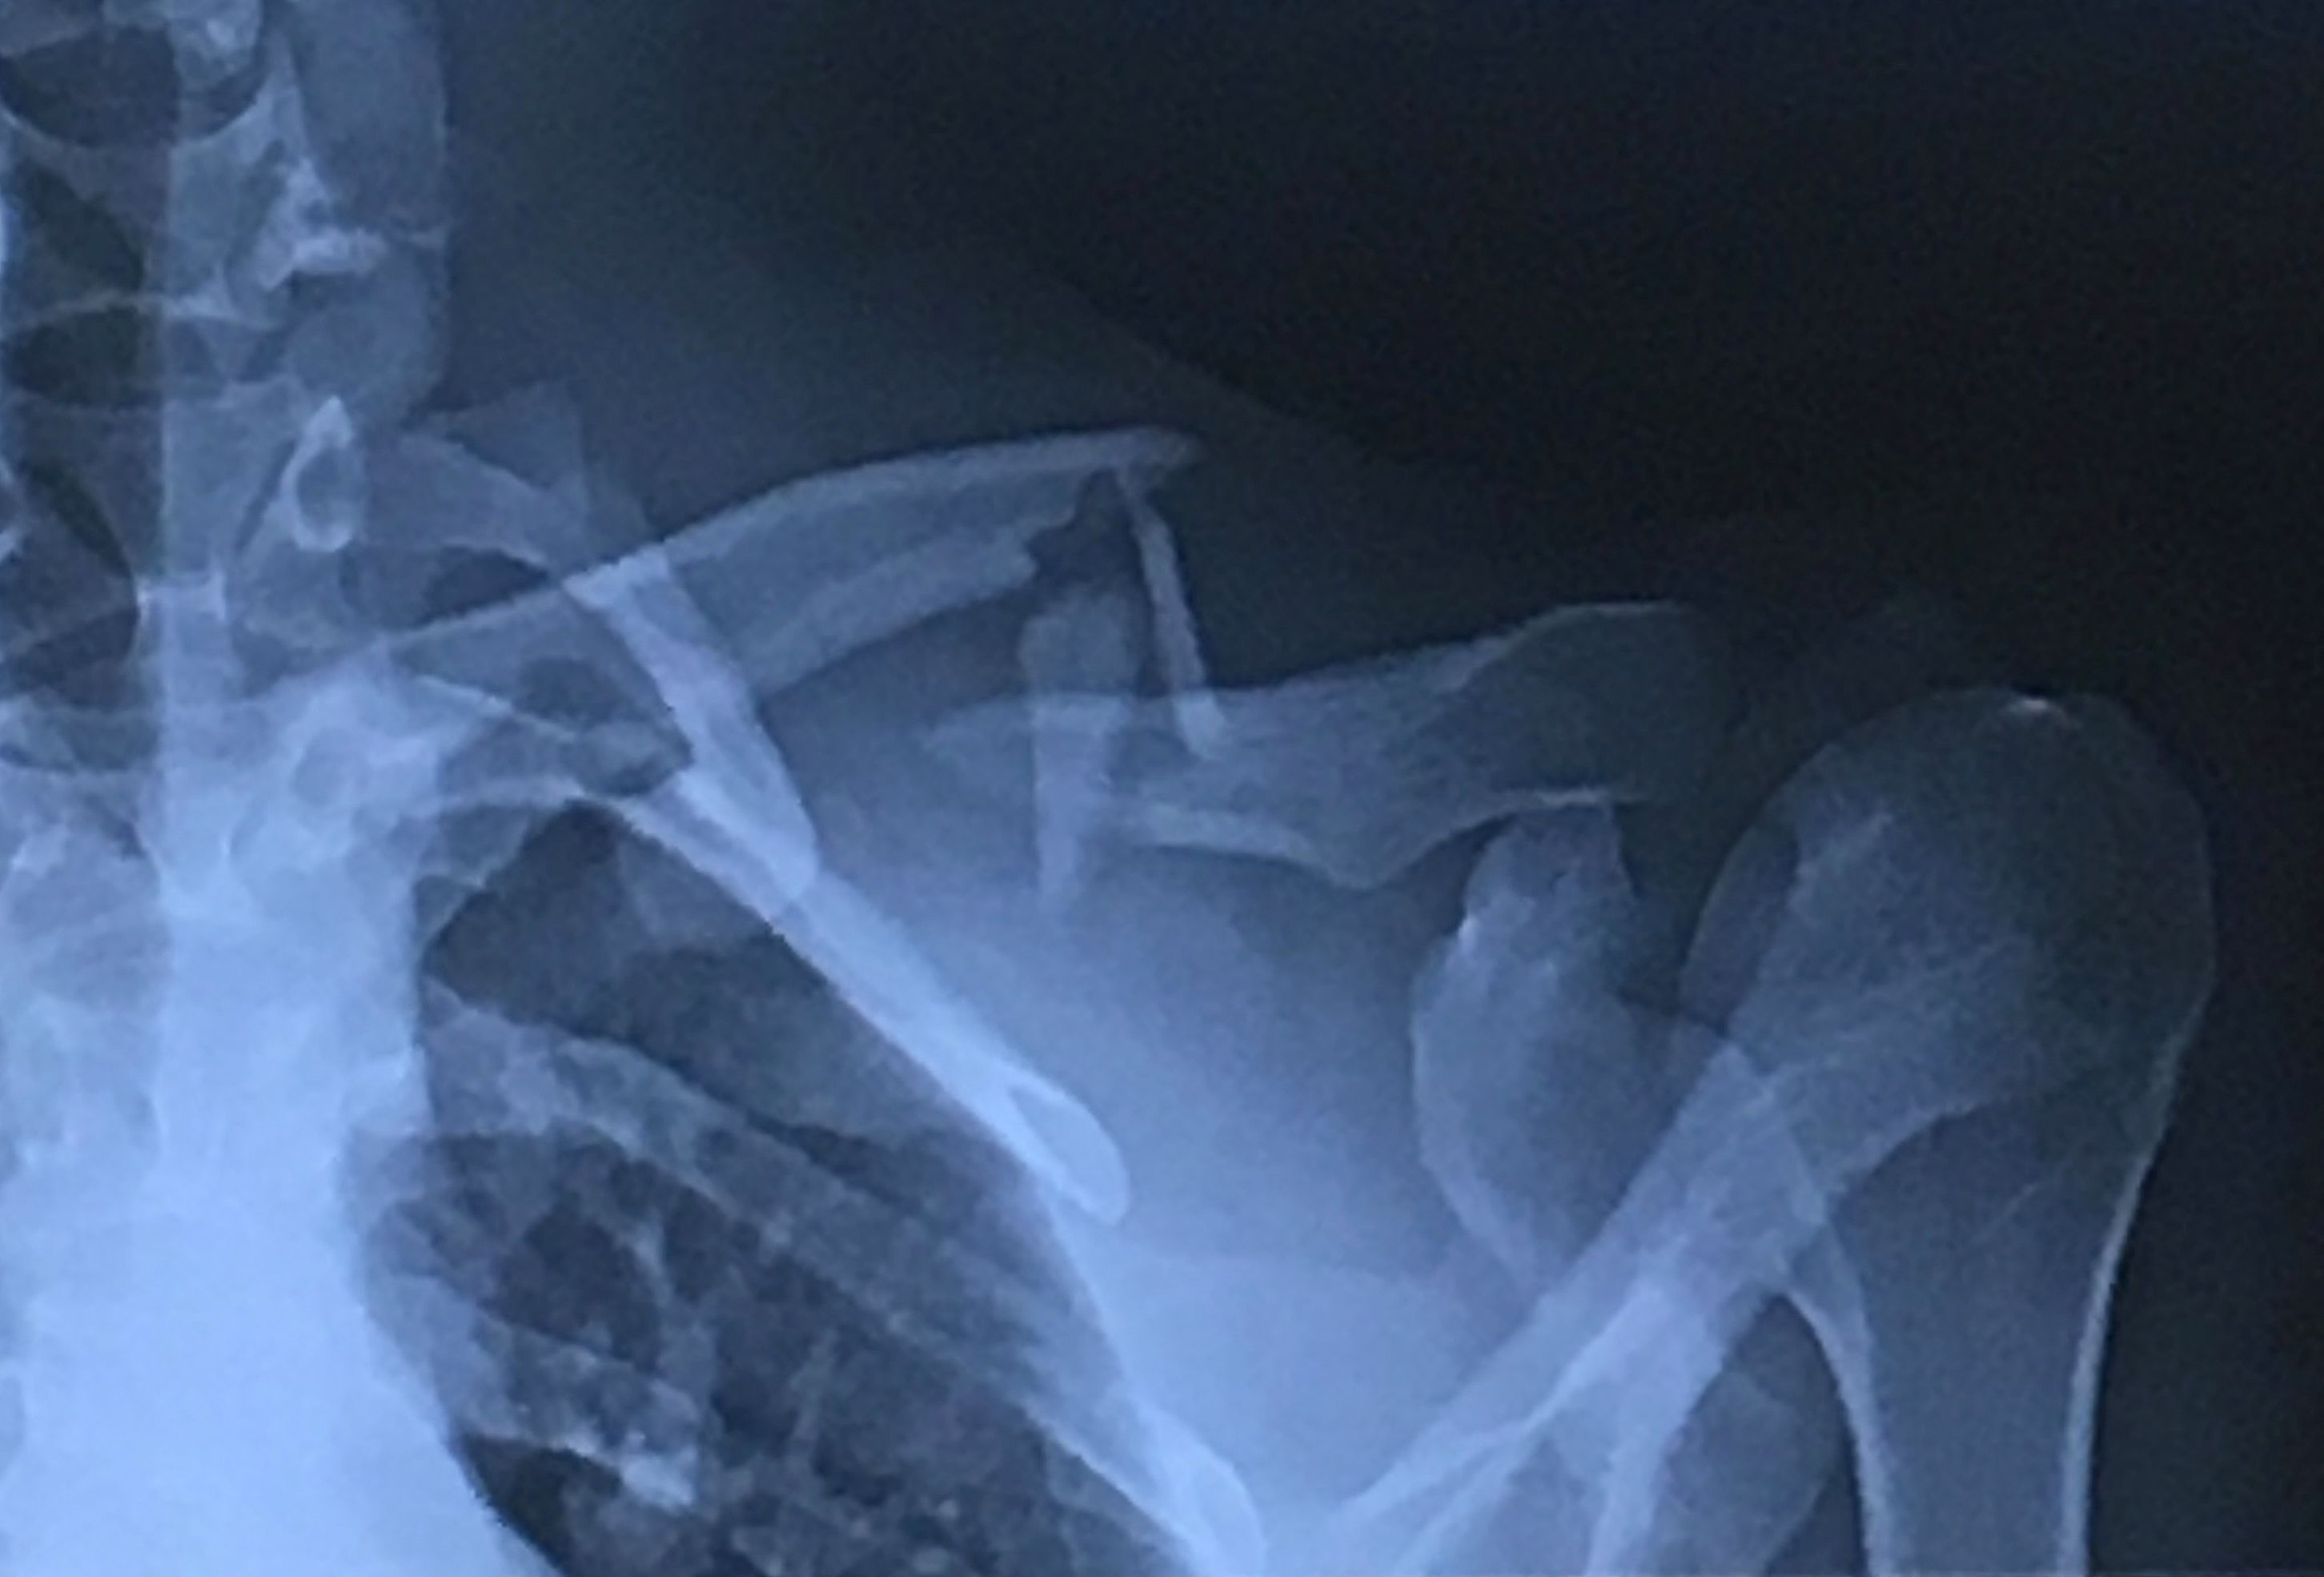 Full frame of an x-ray image of a human shoulder with a broken clavicle or collarbone